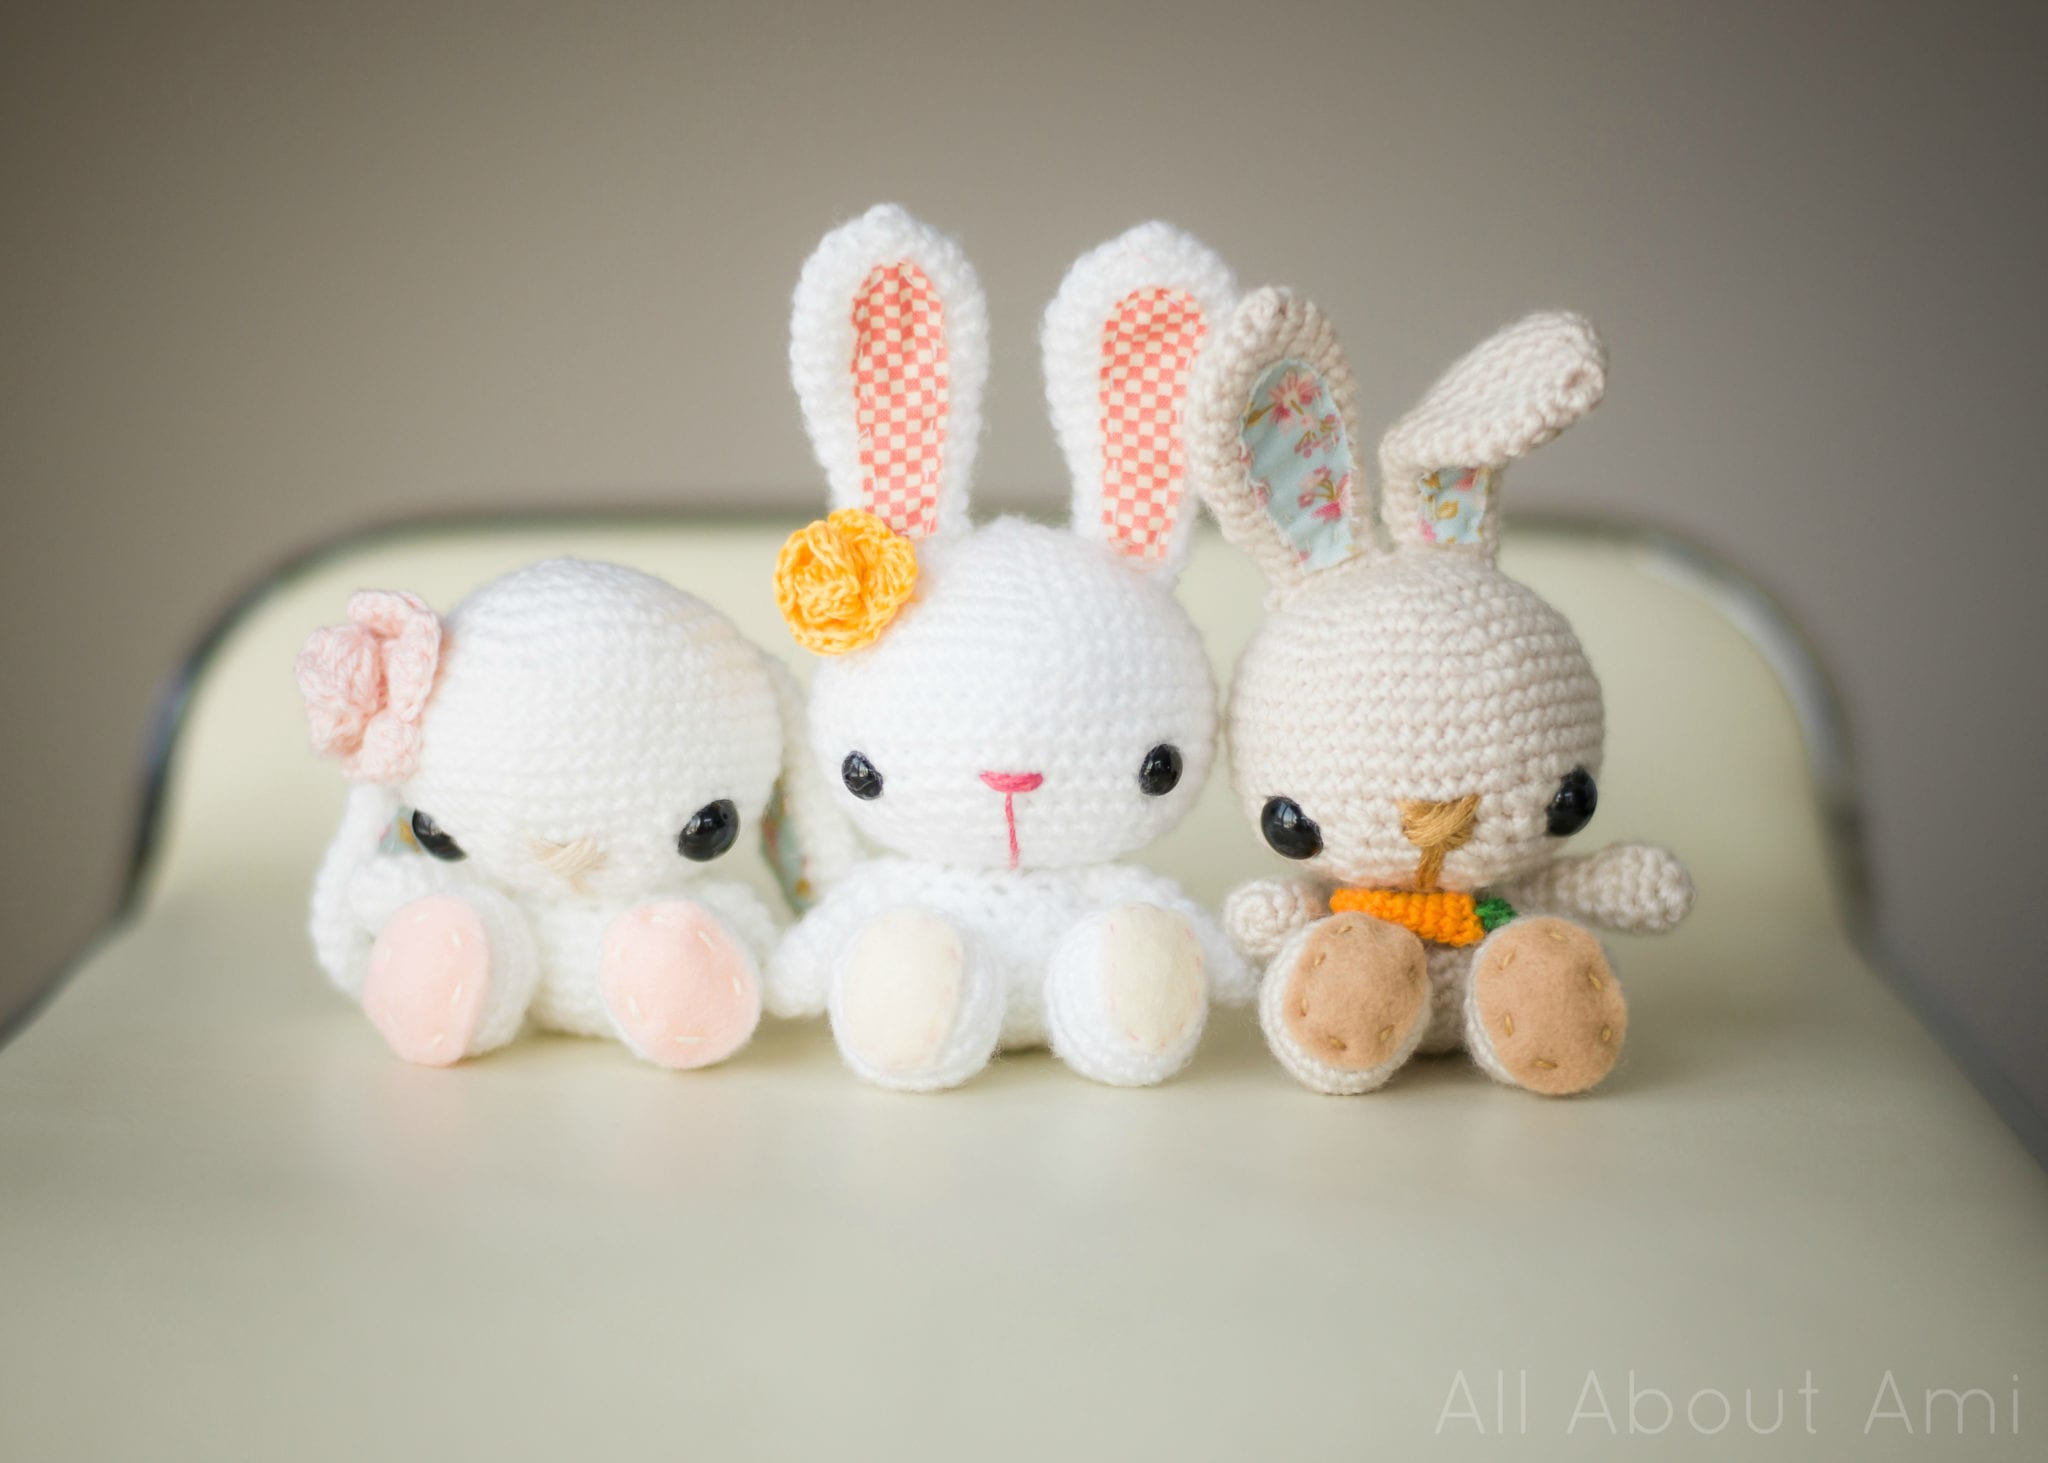 Pattern spring bunnies all about ami crochet spring bunnies 1 bankloansurffo Choice Image